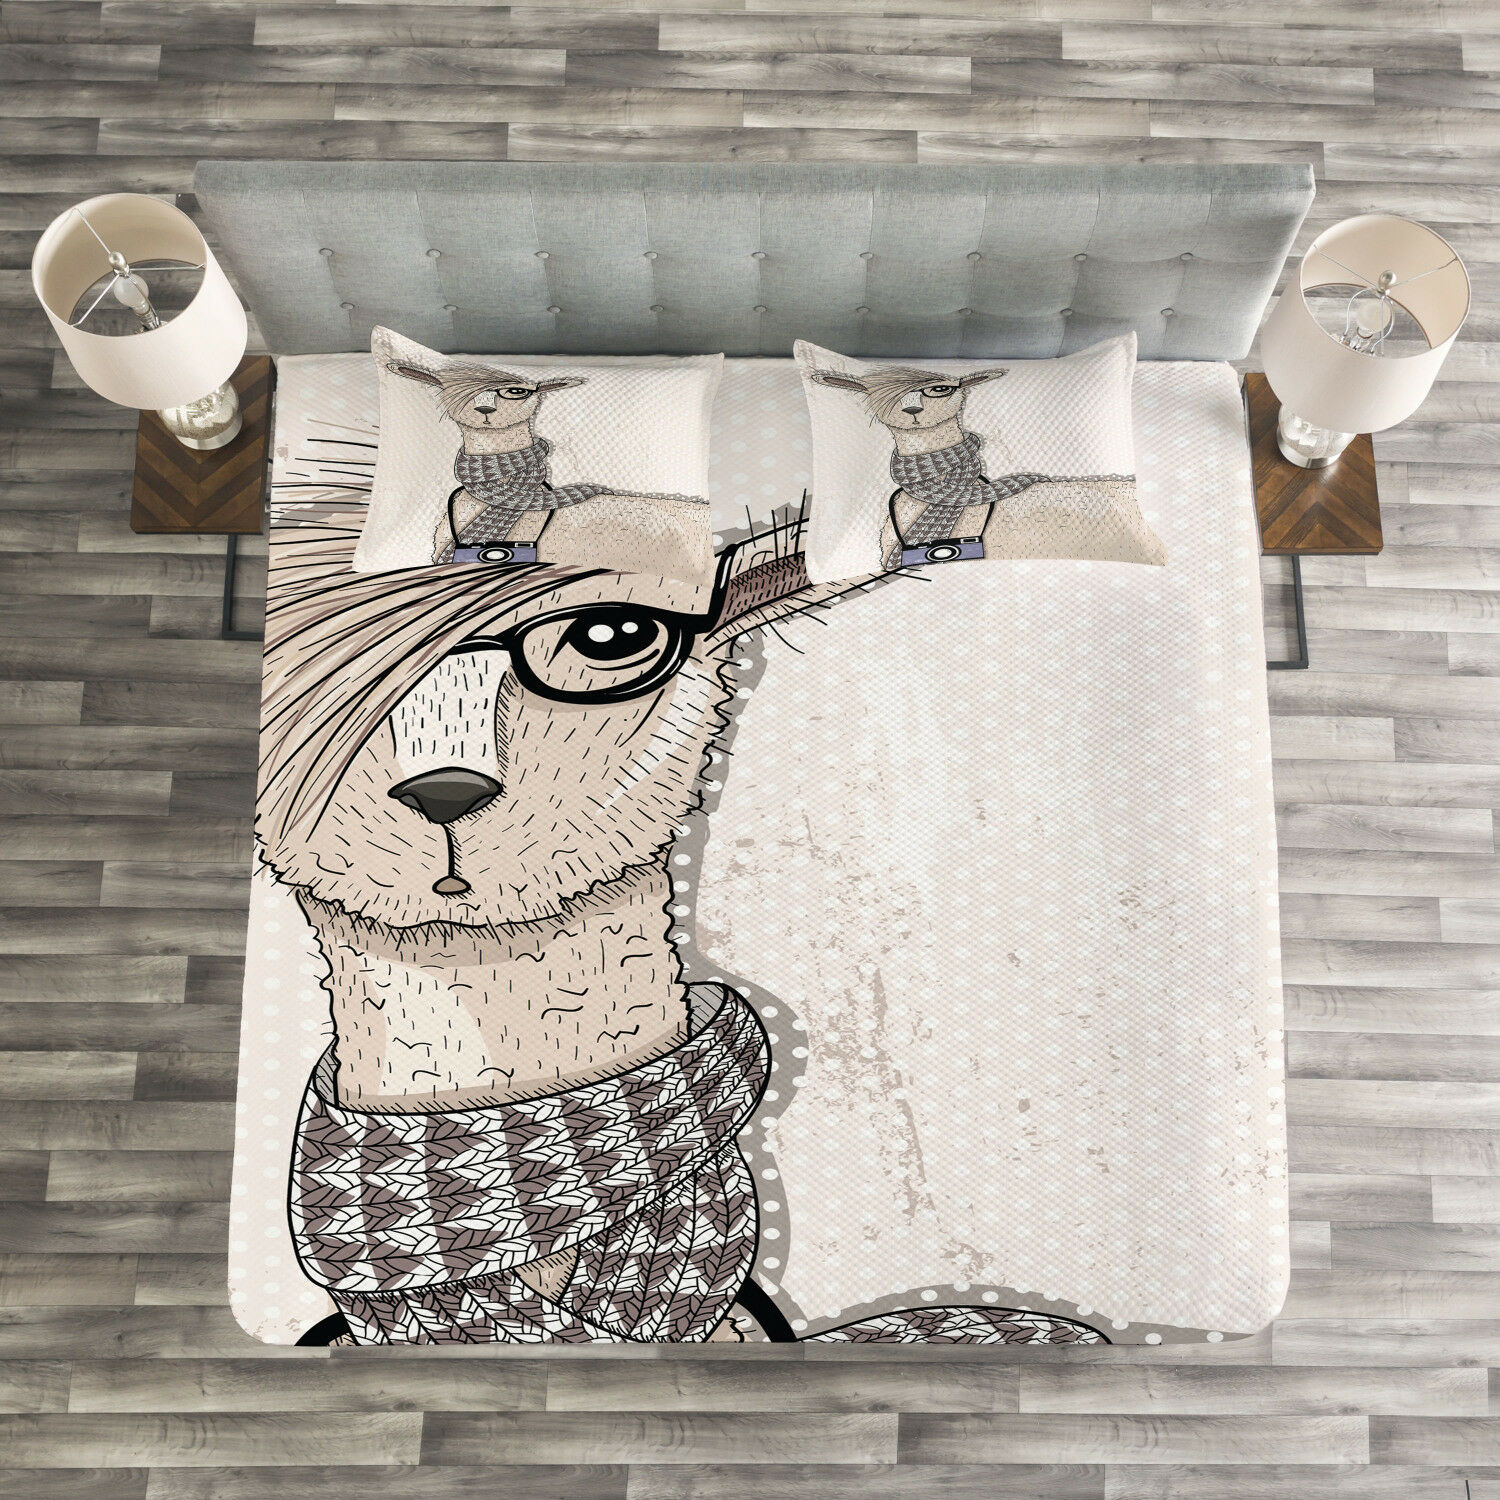 Animal Quilted Bedspread & Pillow Shams Set, Llama with Glasses Scarf Print